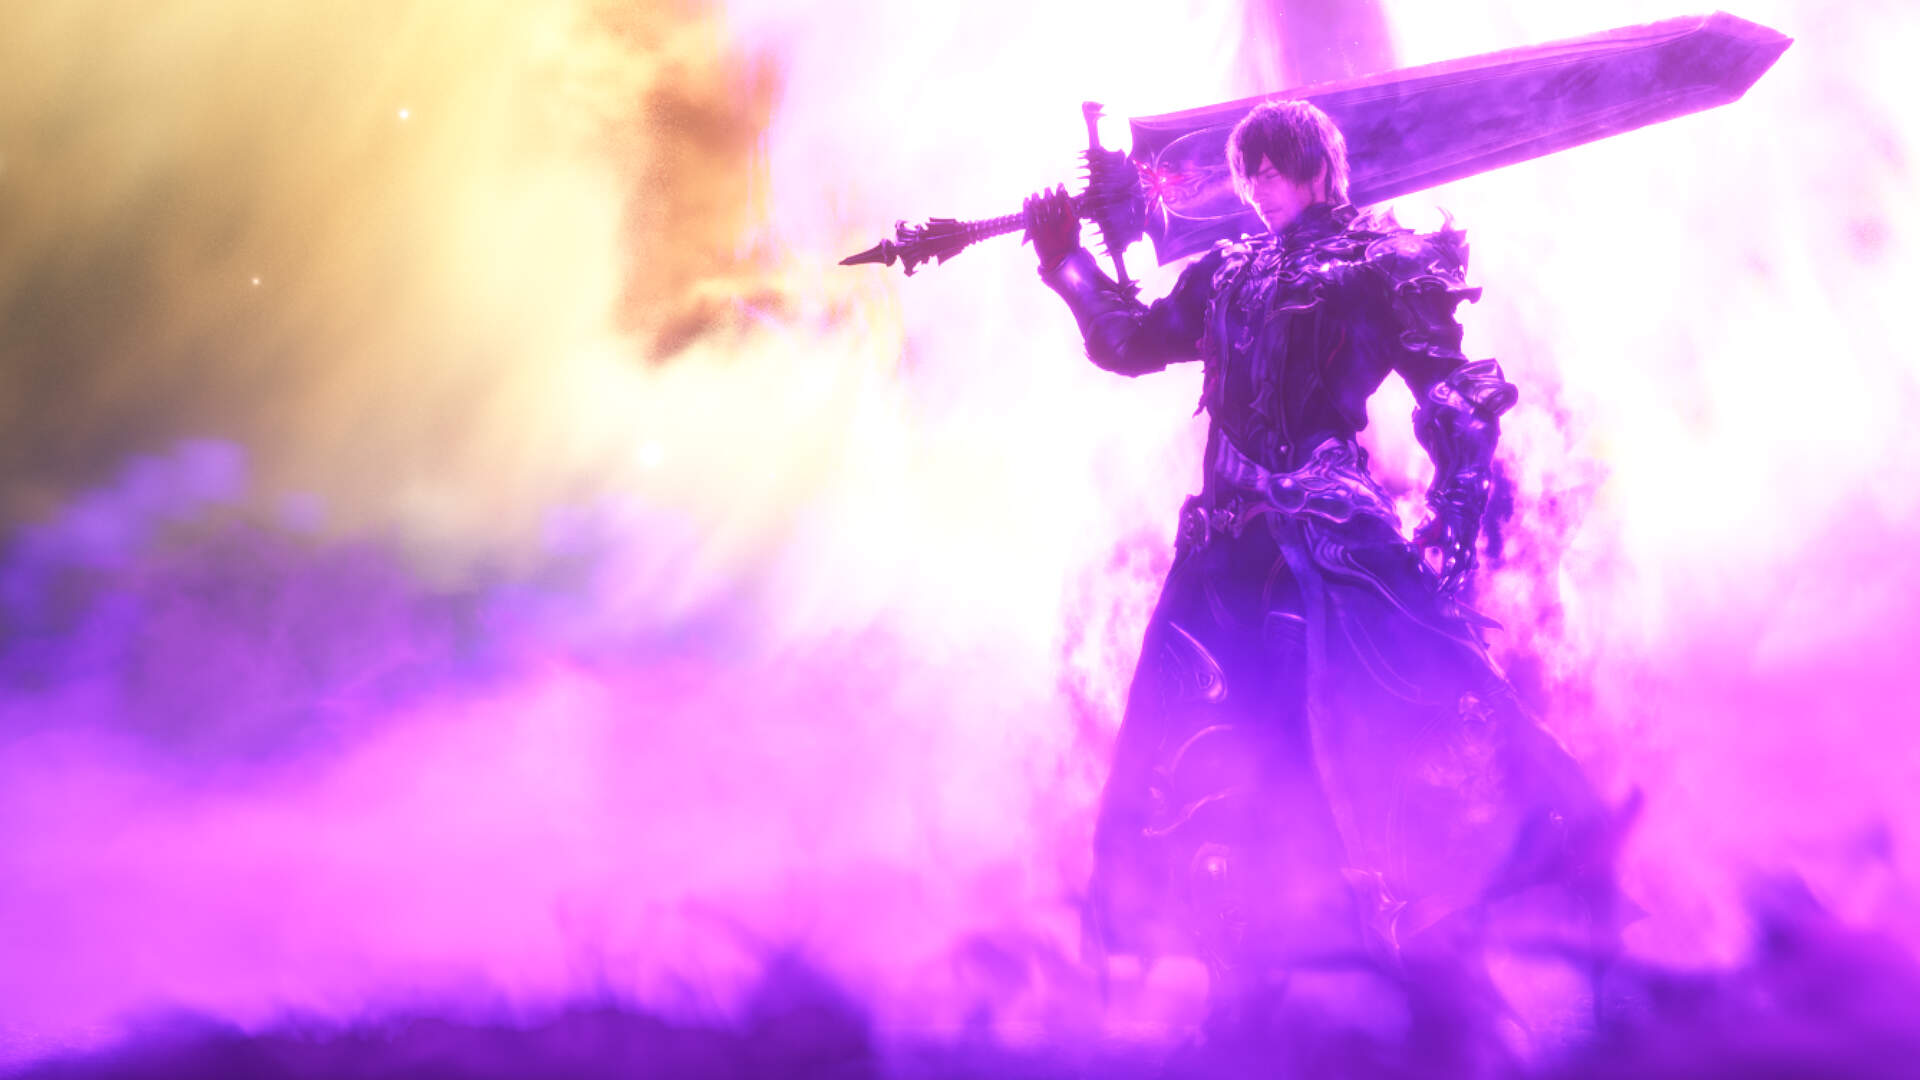 Final Fantasy 14 Servers Go Down Due To DDoS Attack Amid Shadowbringers Early Access